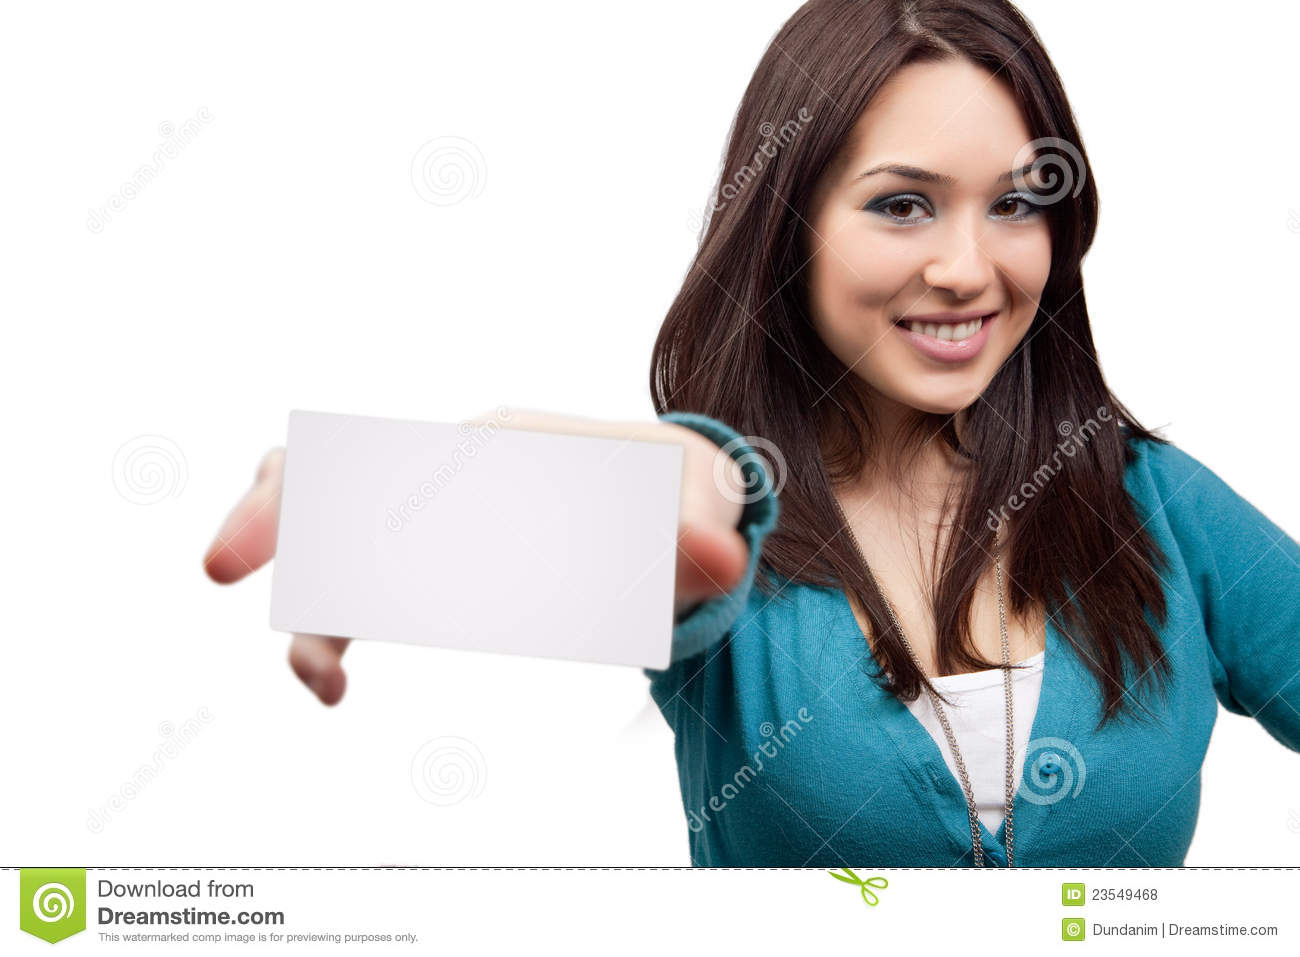 Marketing concept - woman and business card